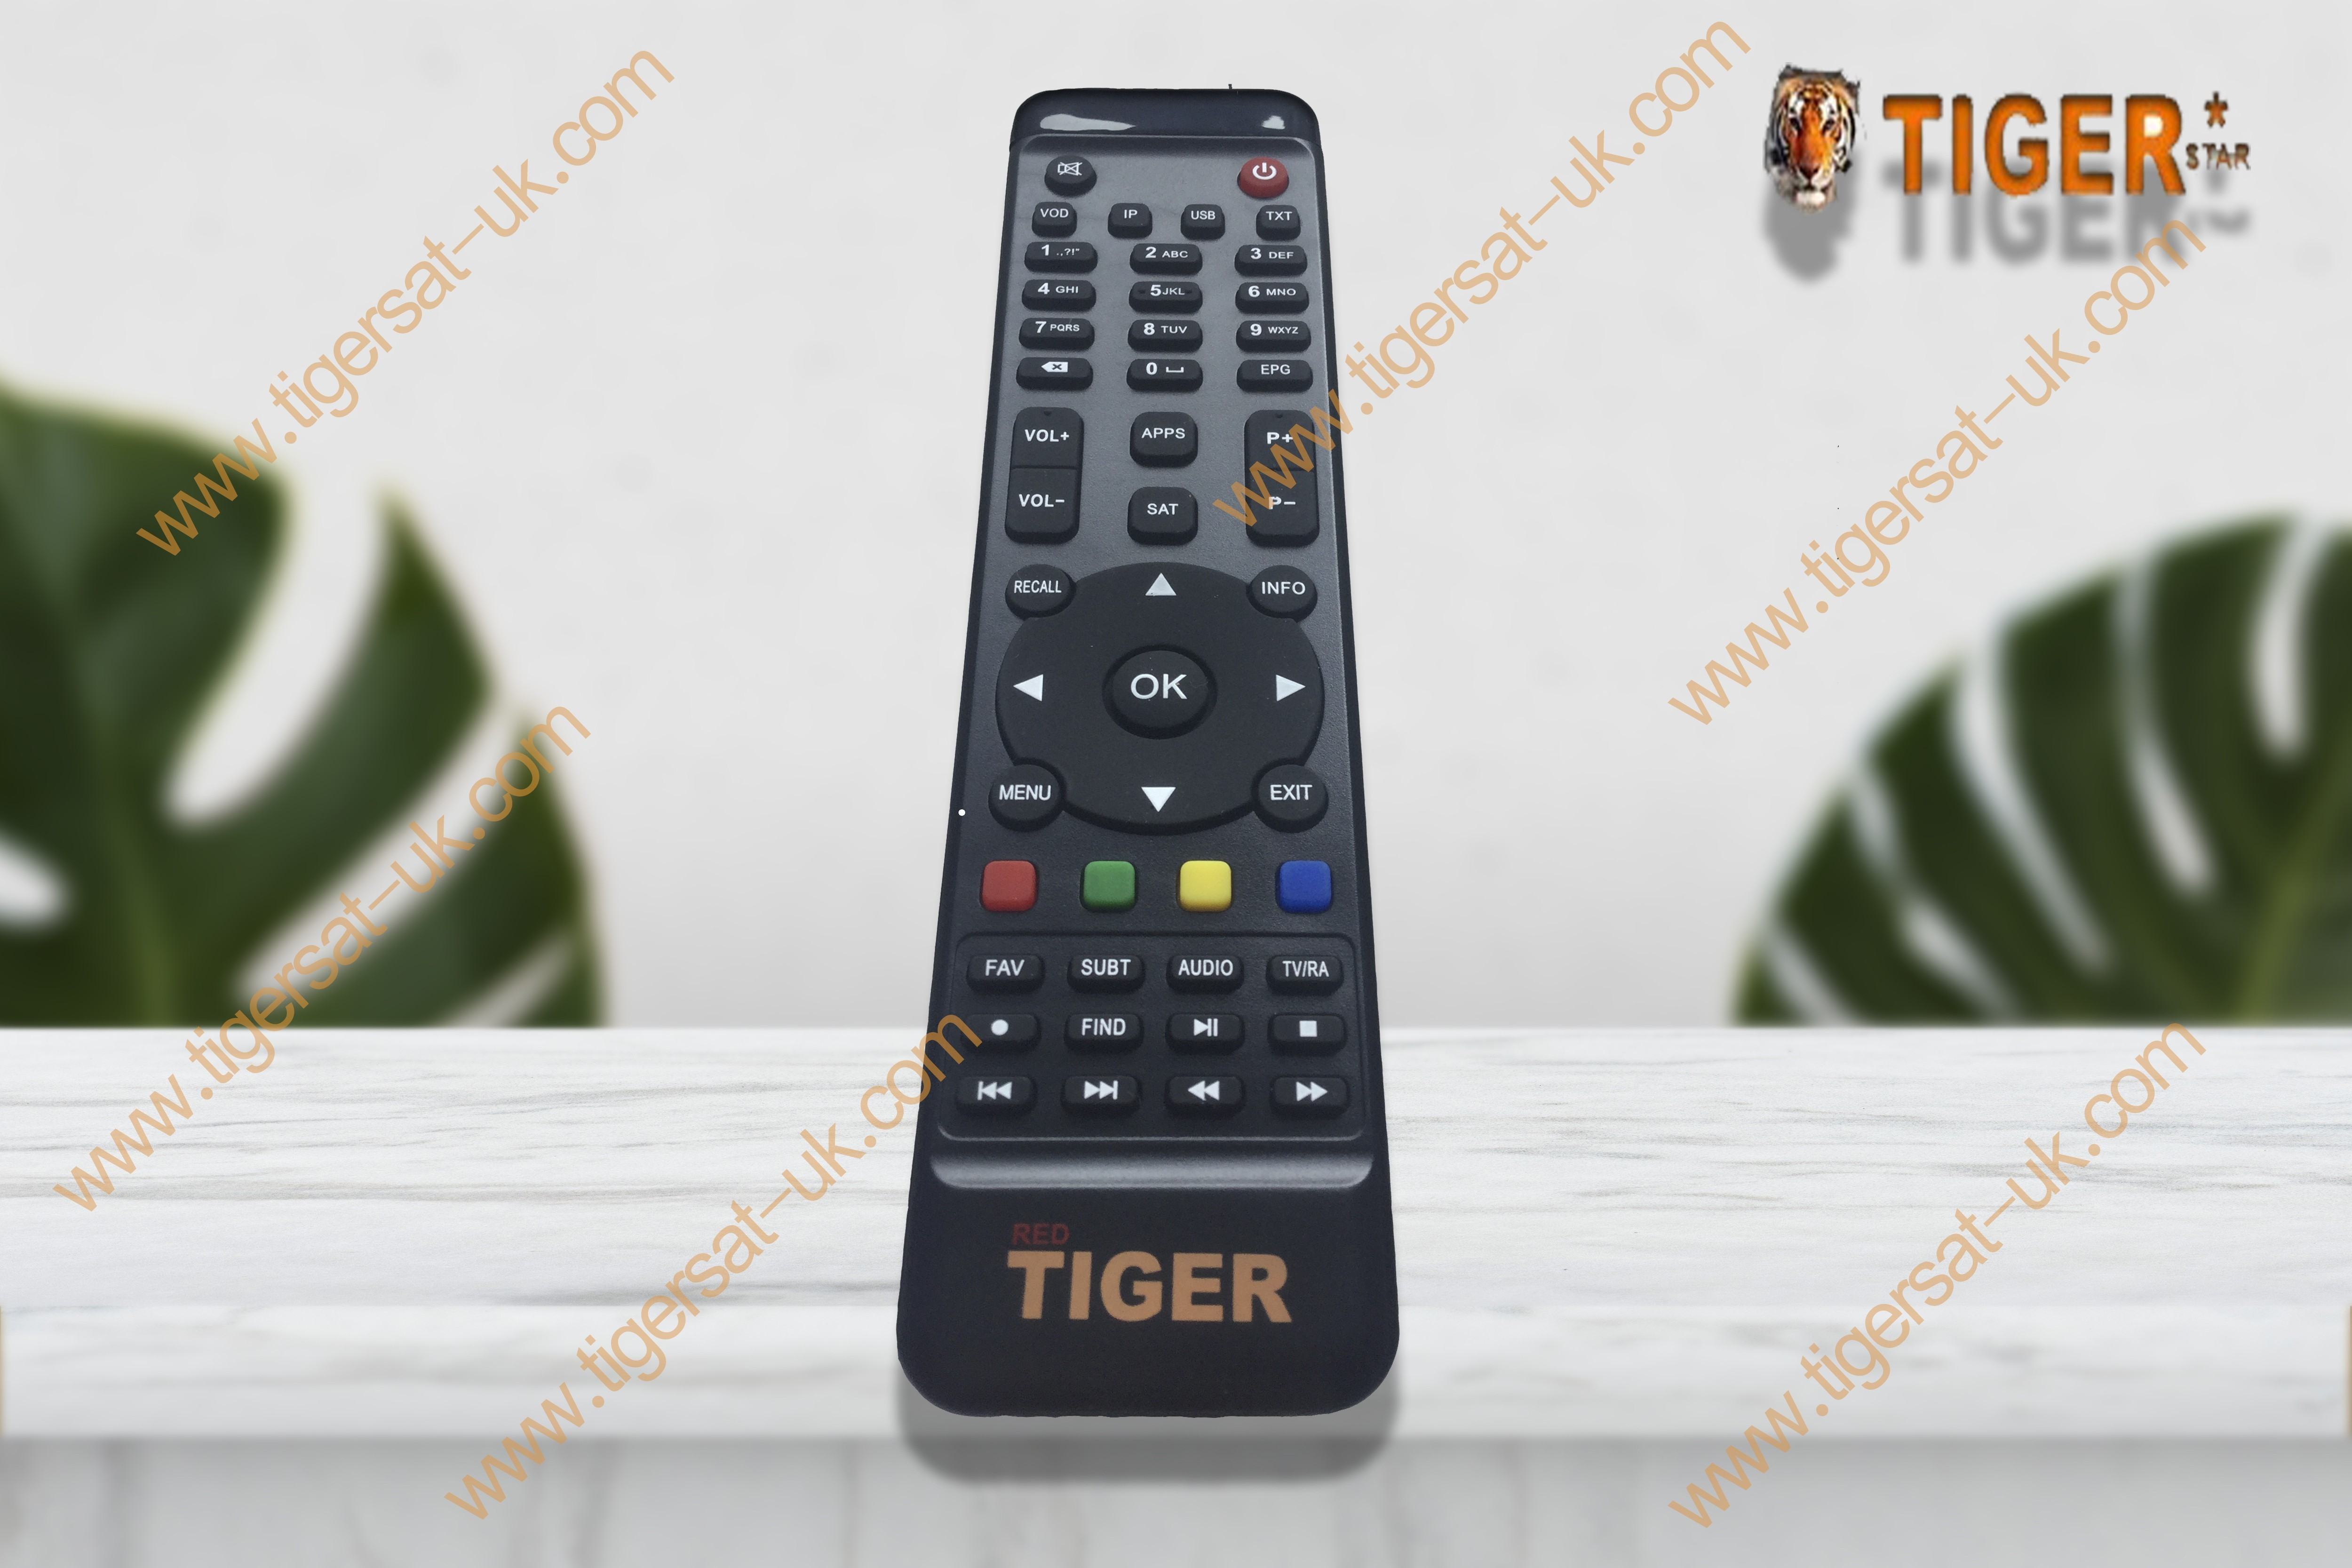 tiger star Remote control I Models